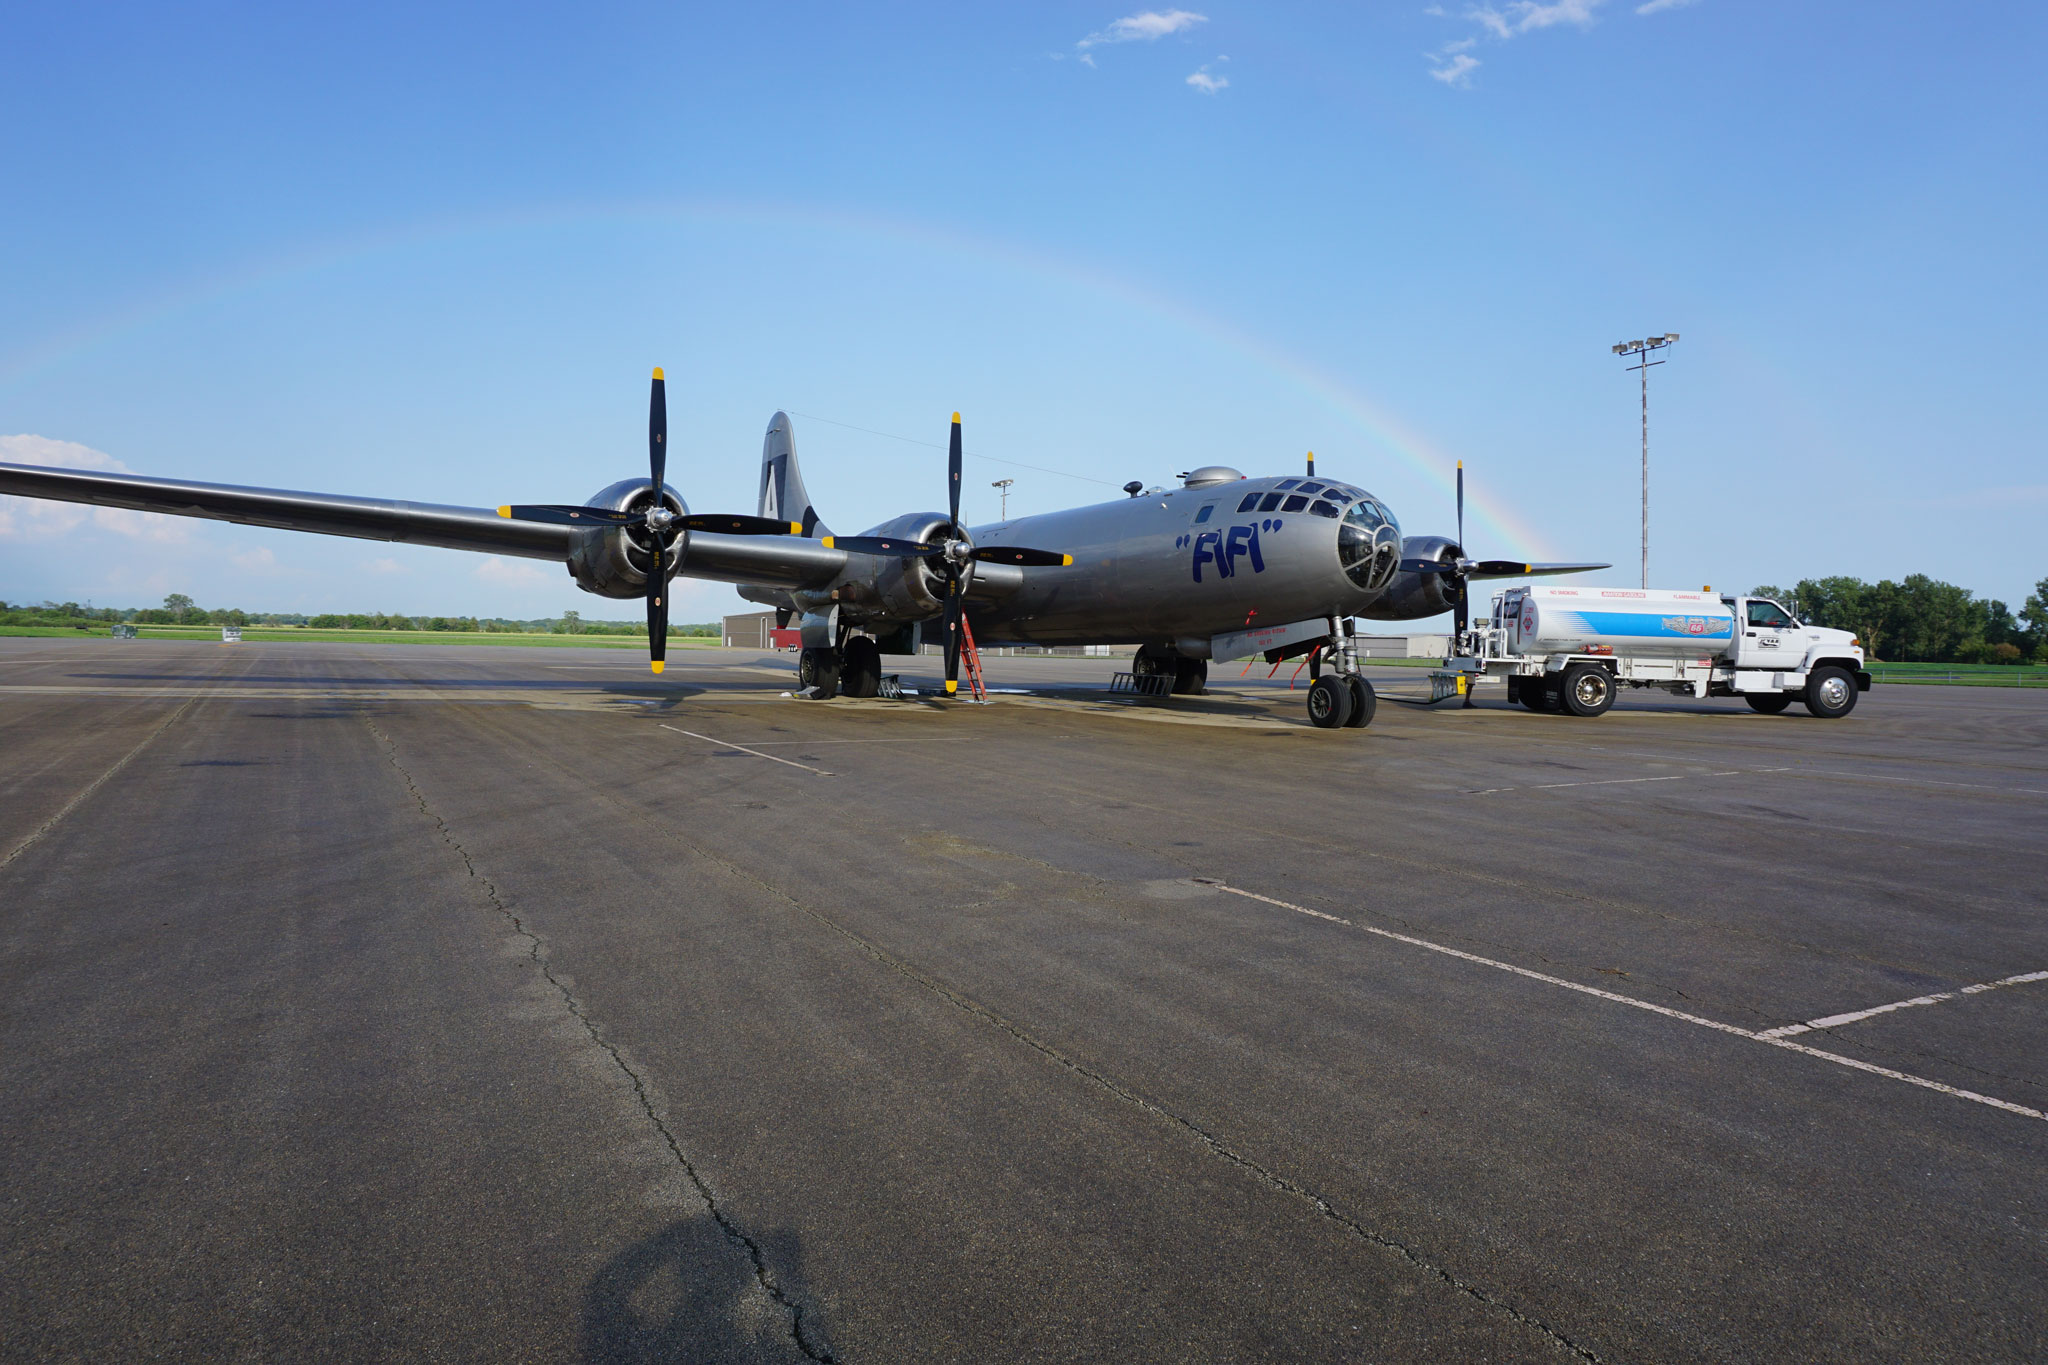 historic meeting of b-29s 'fifi' and doc | general aviation news